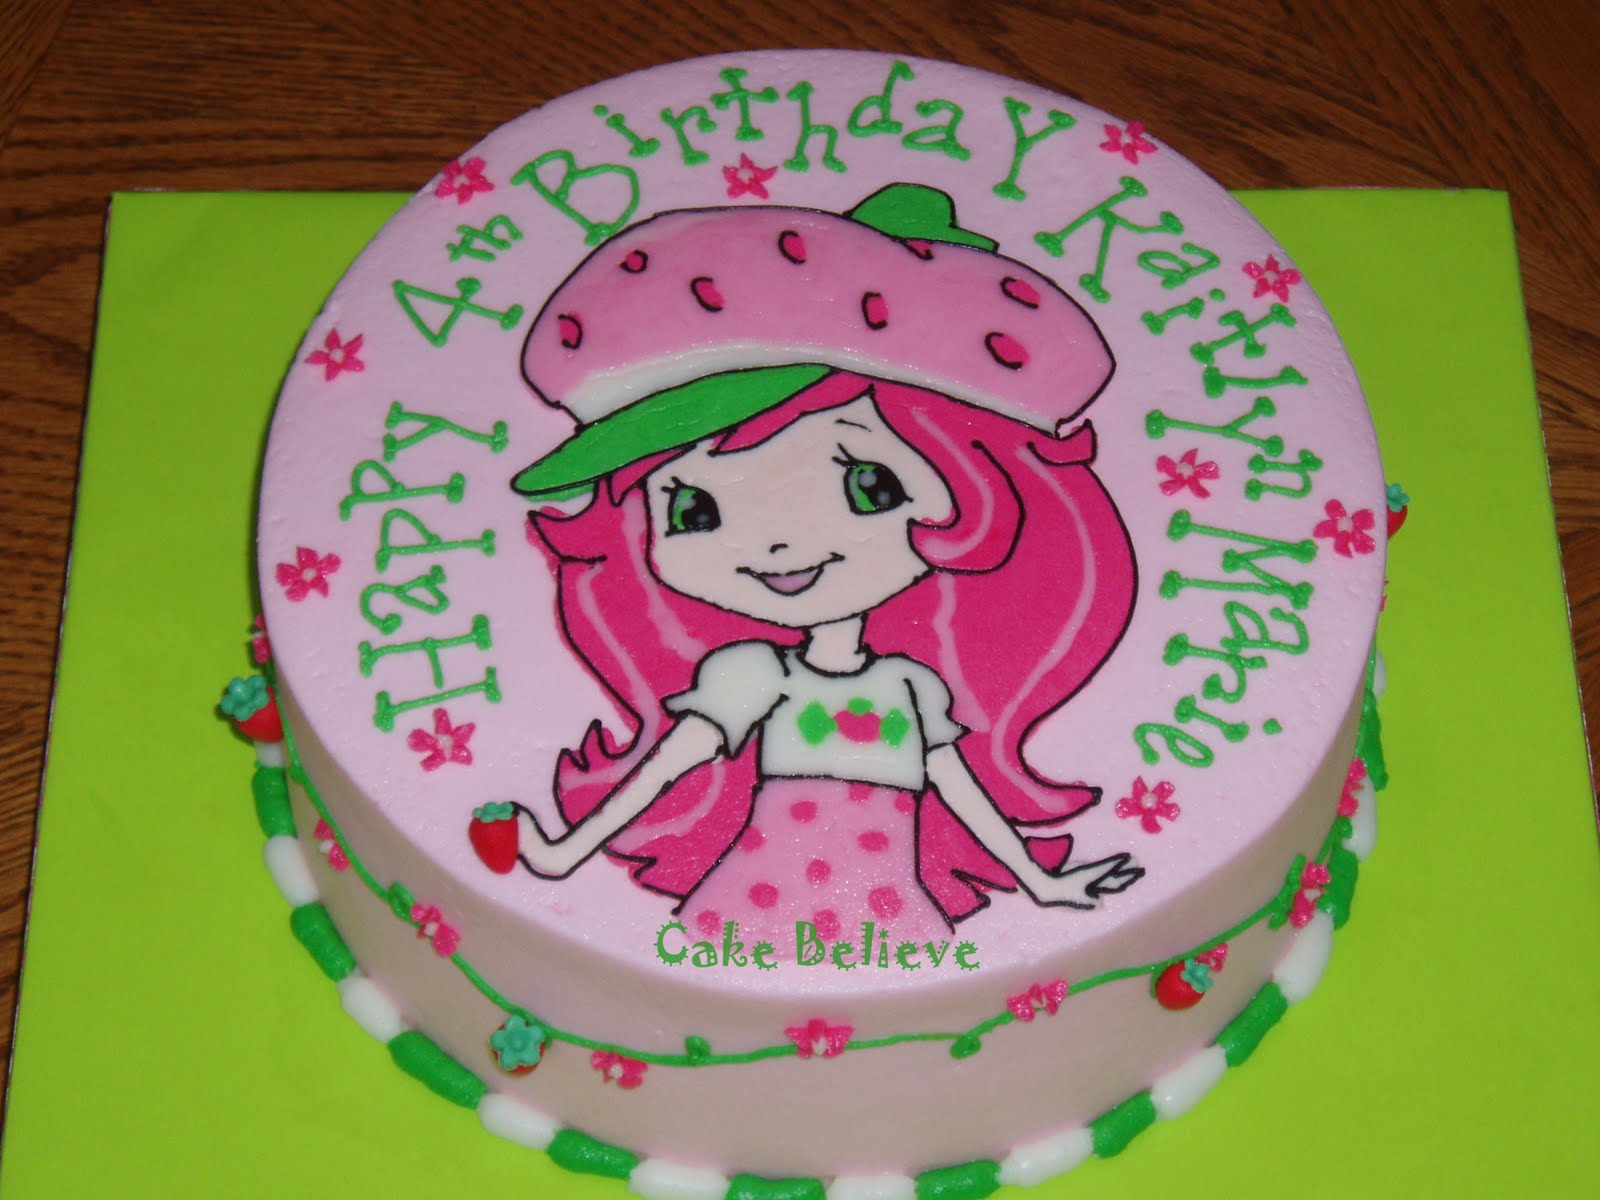 Cake Ideas, Strawberries Cake, Character Cake, Strawberry Shortcake ...